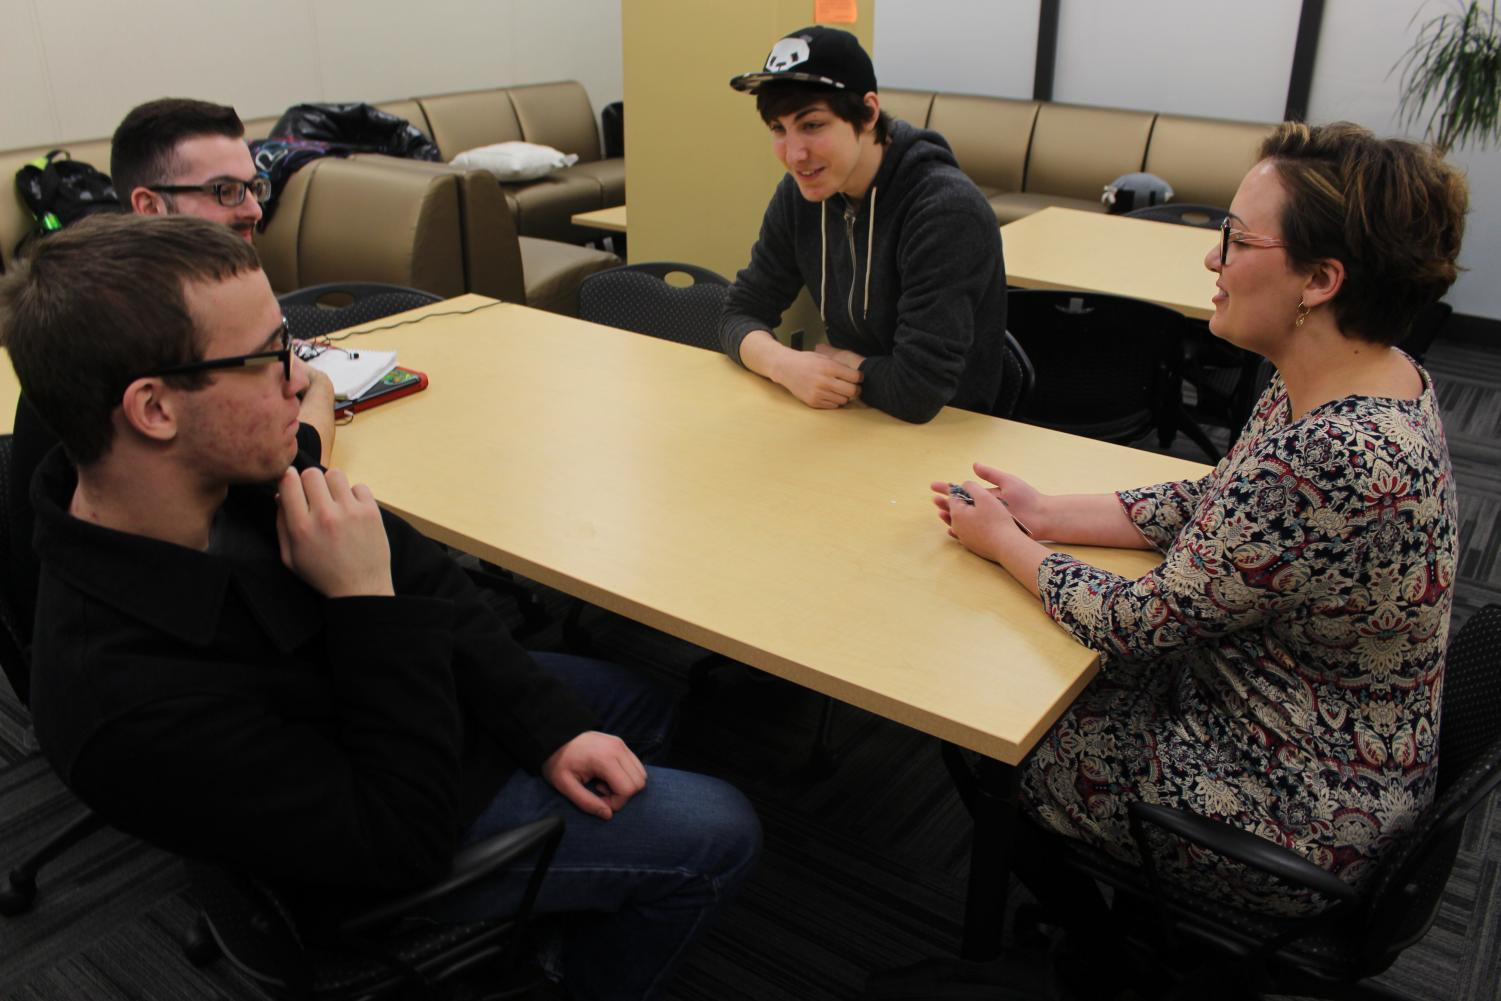 Natalie Beckley (right) introduces herself to Joshua Copeland, sophomore computer engineering major; Liam Ahearn, sophomore mathematics major; and Jacob Widowfield, freshman computer science major (left to right).